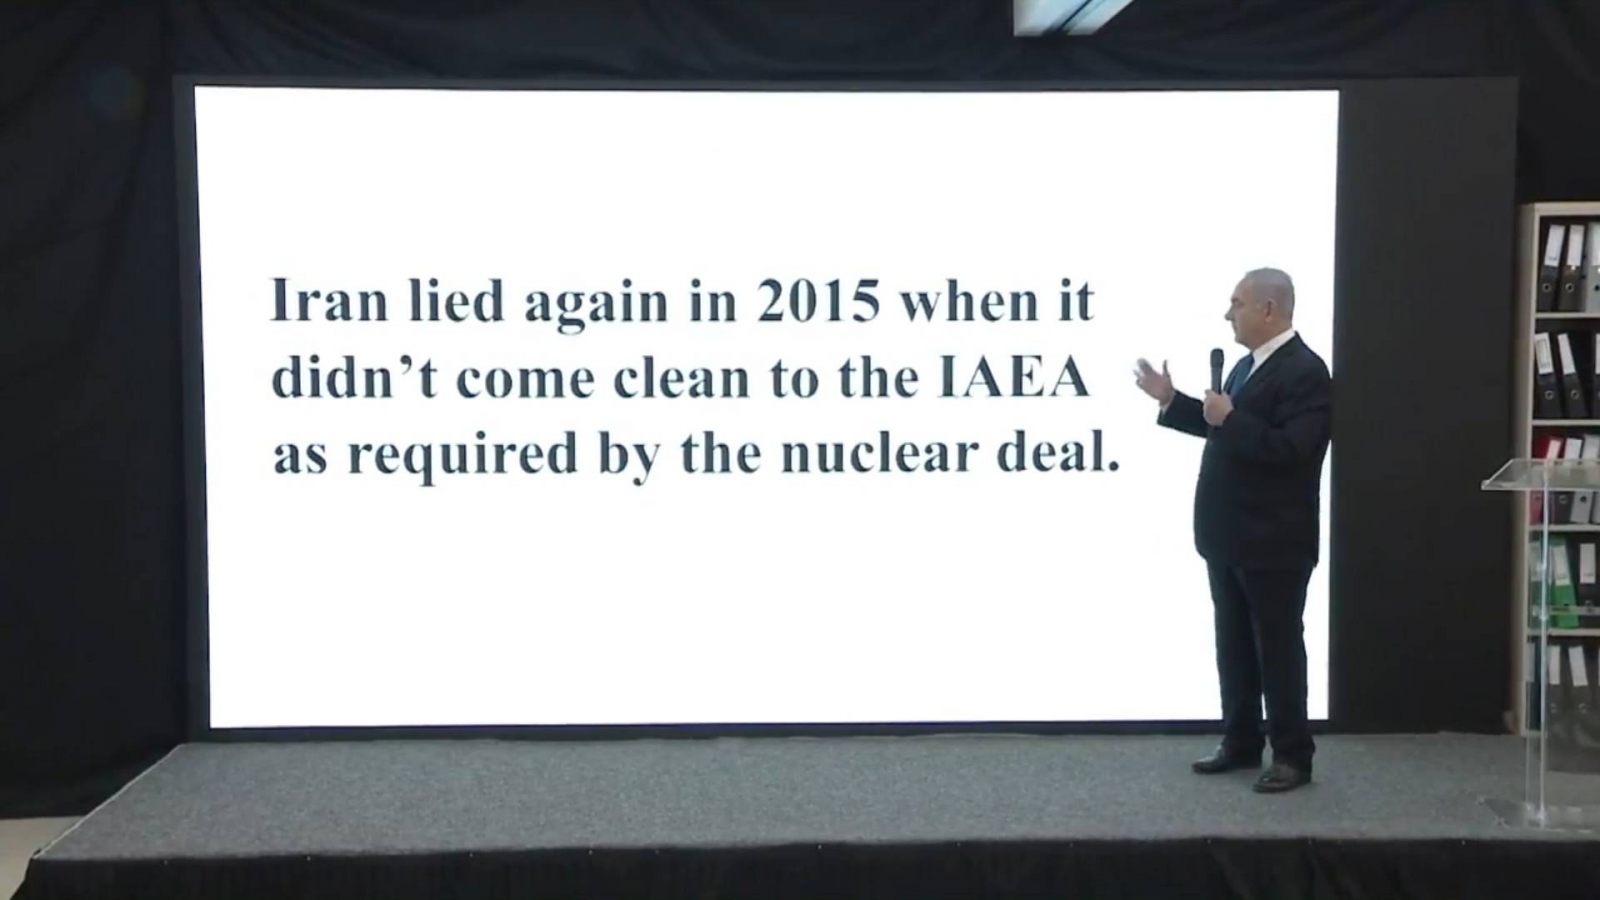 israels-netanyahu-accuses-iran-of-lying-about-nuclear-deal-with-u-s